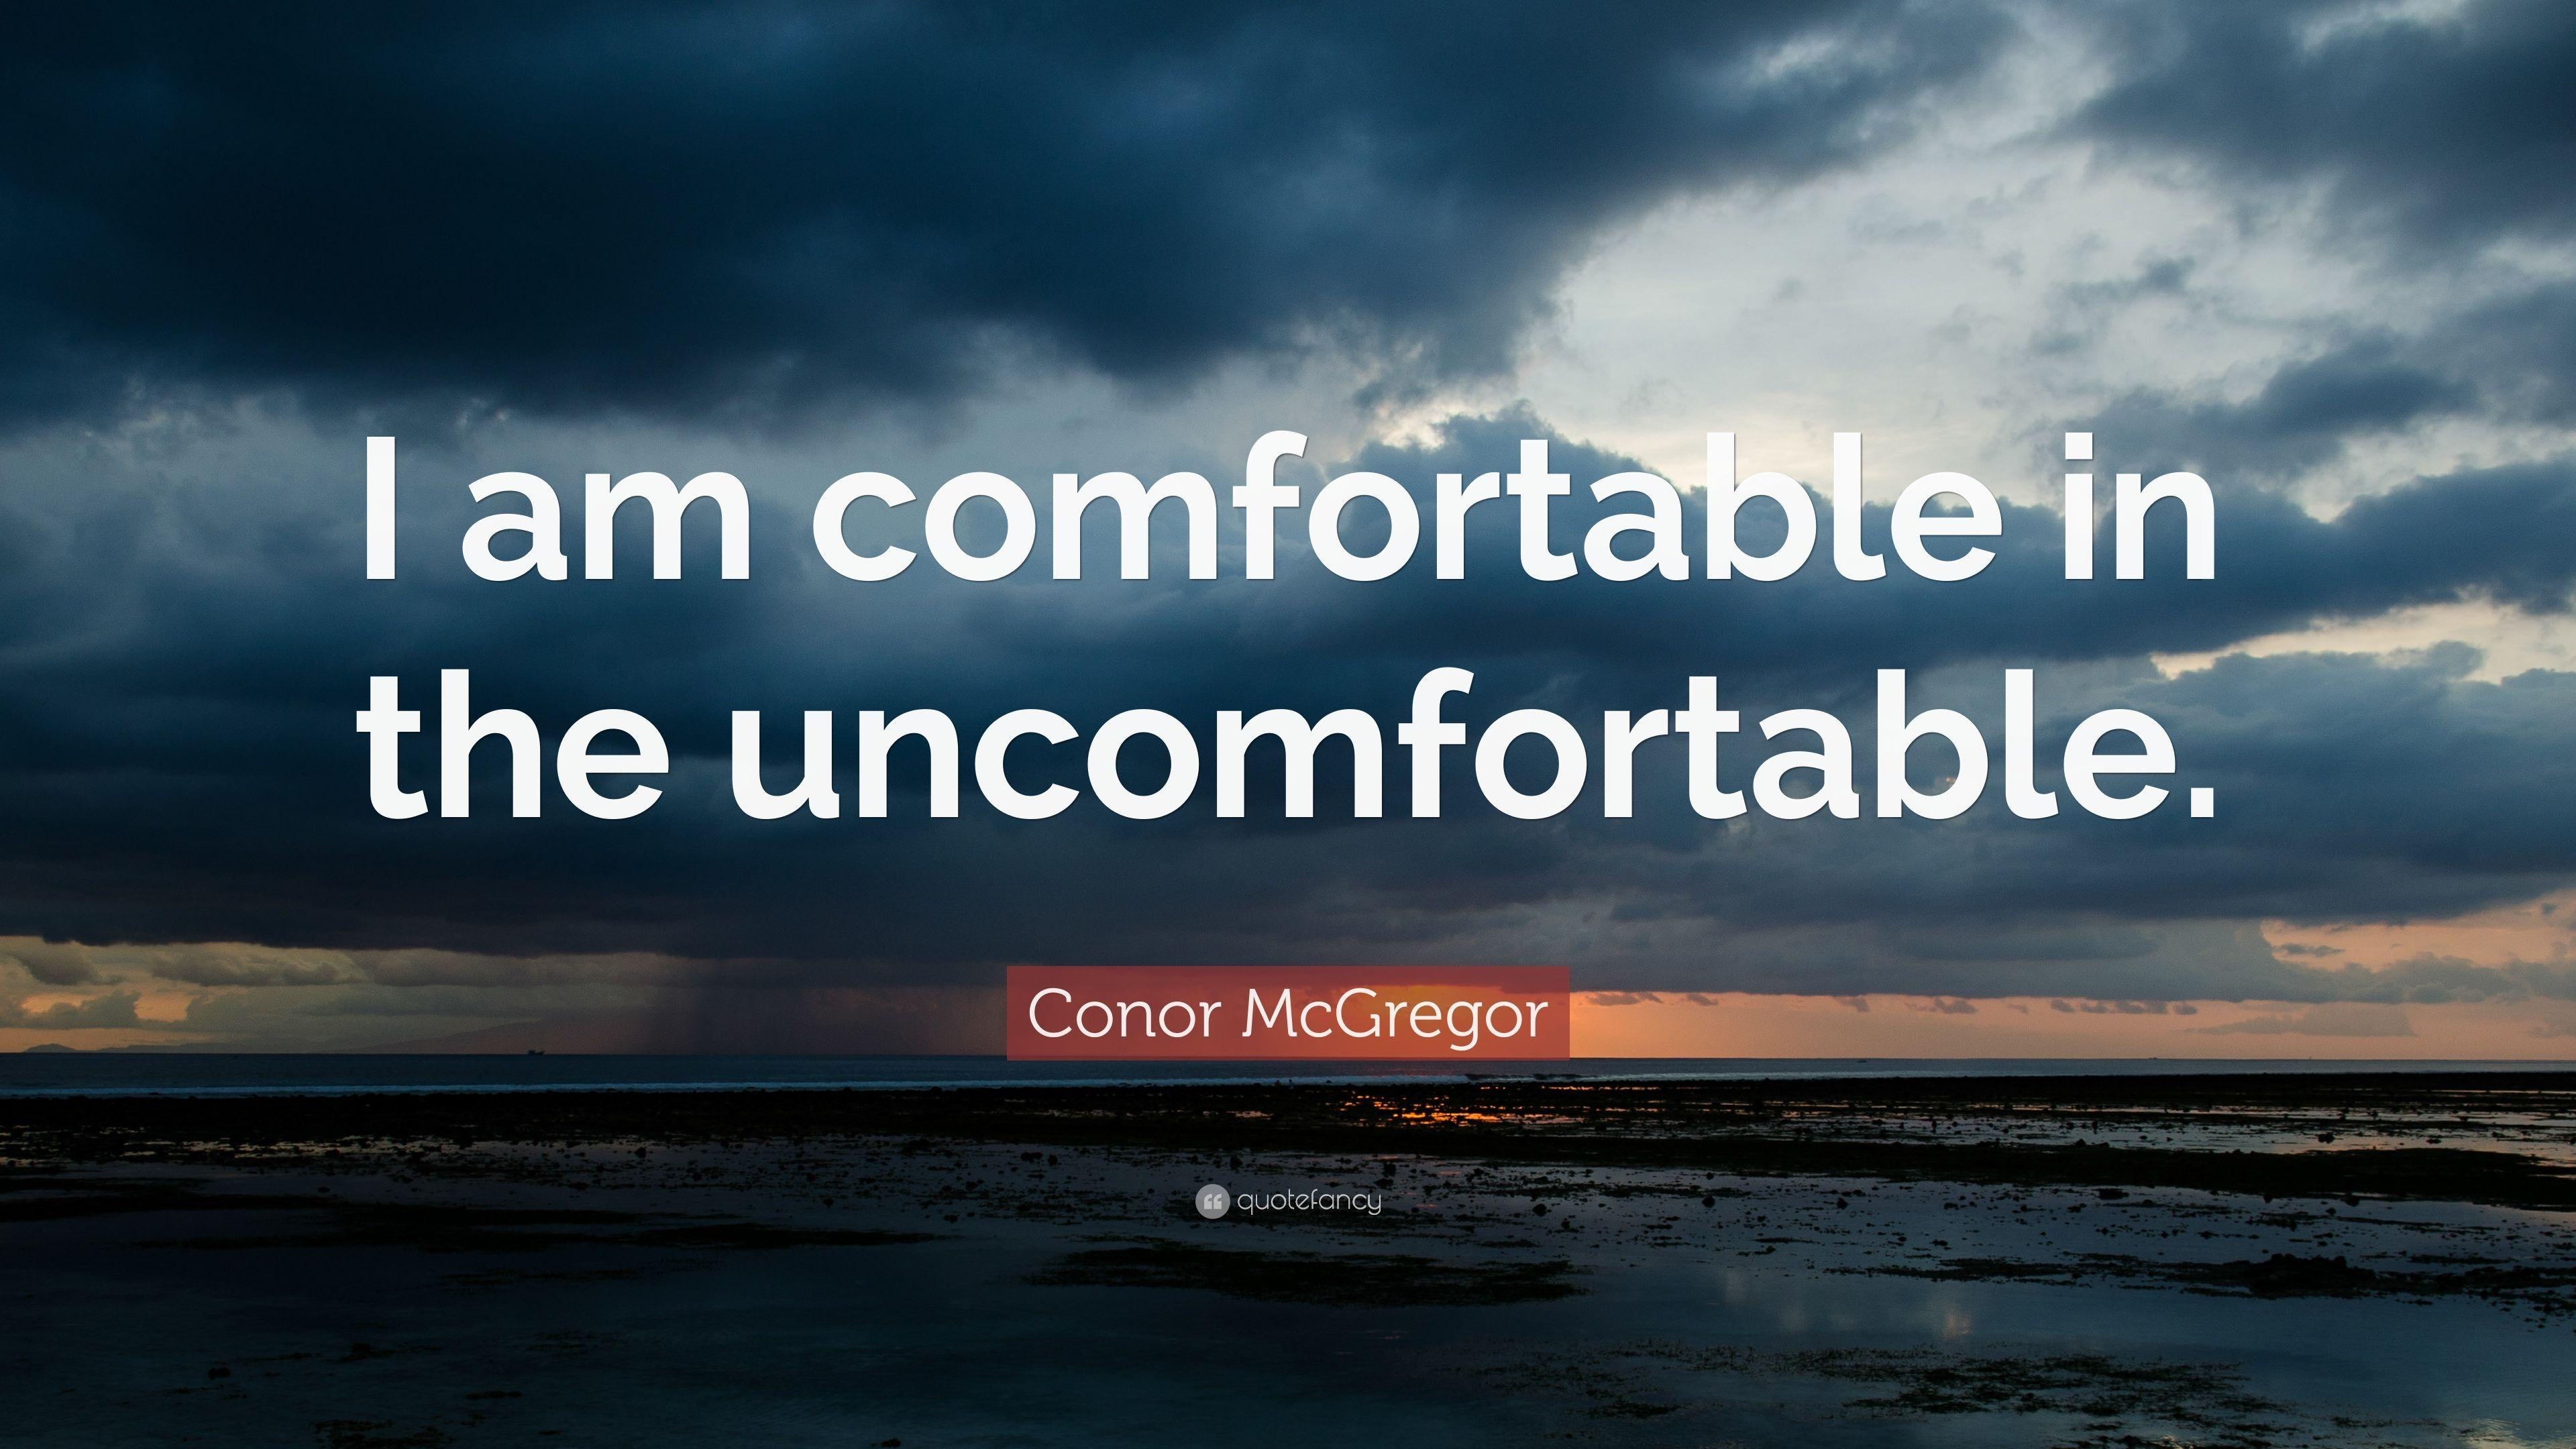 Laptop Quote Wallpaper Conor Mcgregor Quotes Wallpapers Wallpaper Cave